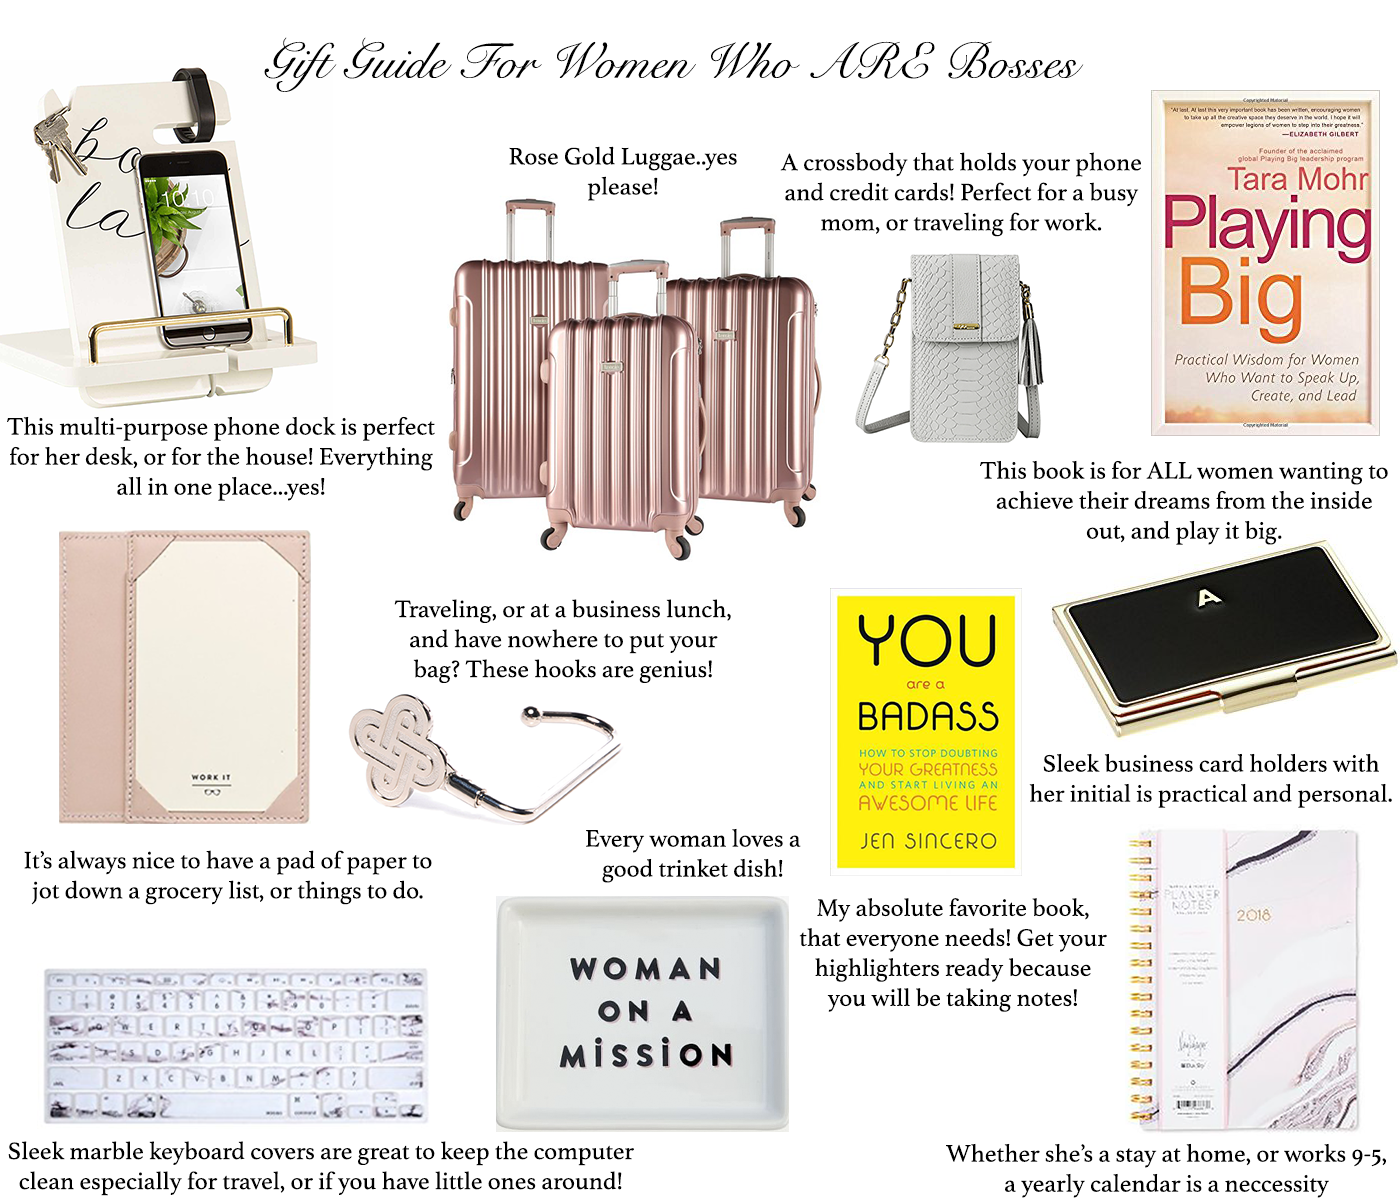 Gift Guide For Women Who ARE Bosses